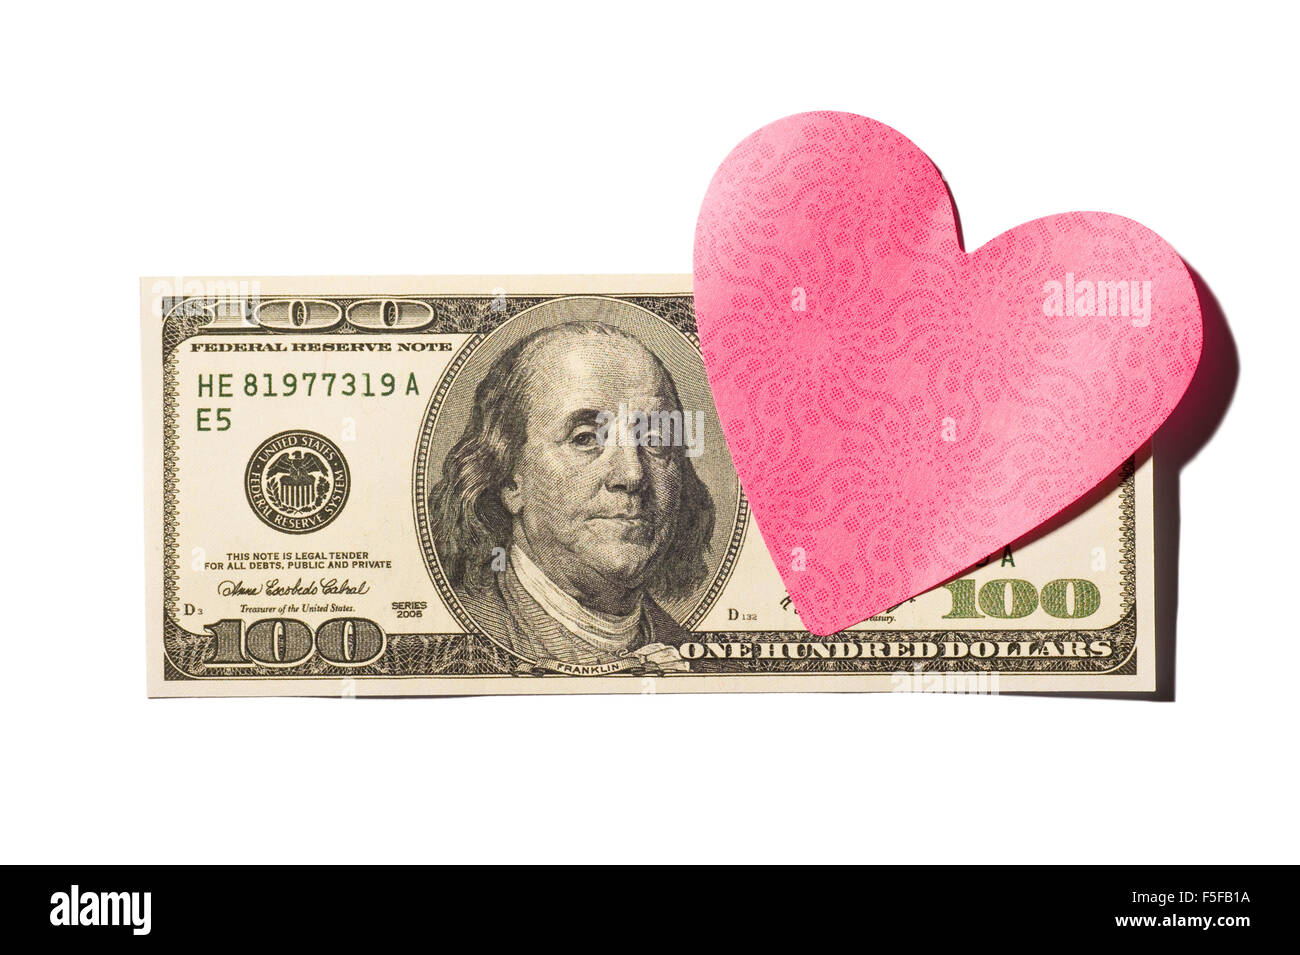 Hundred Dollar Bill With Heart-Shaped Postit Note - Stock Image